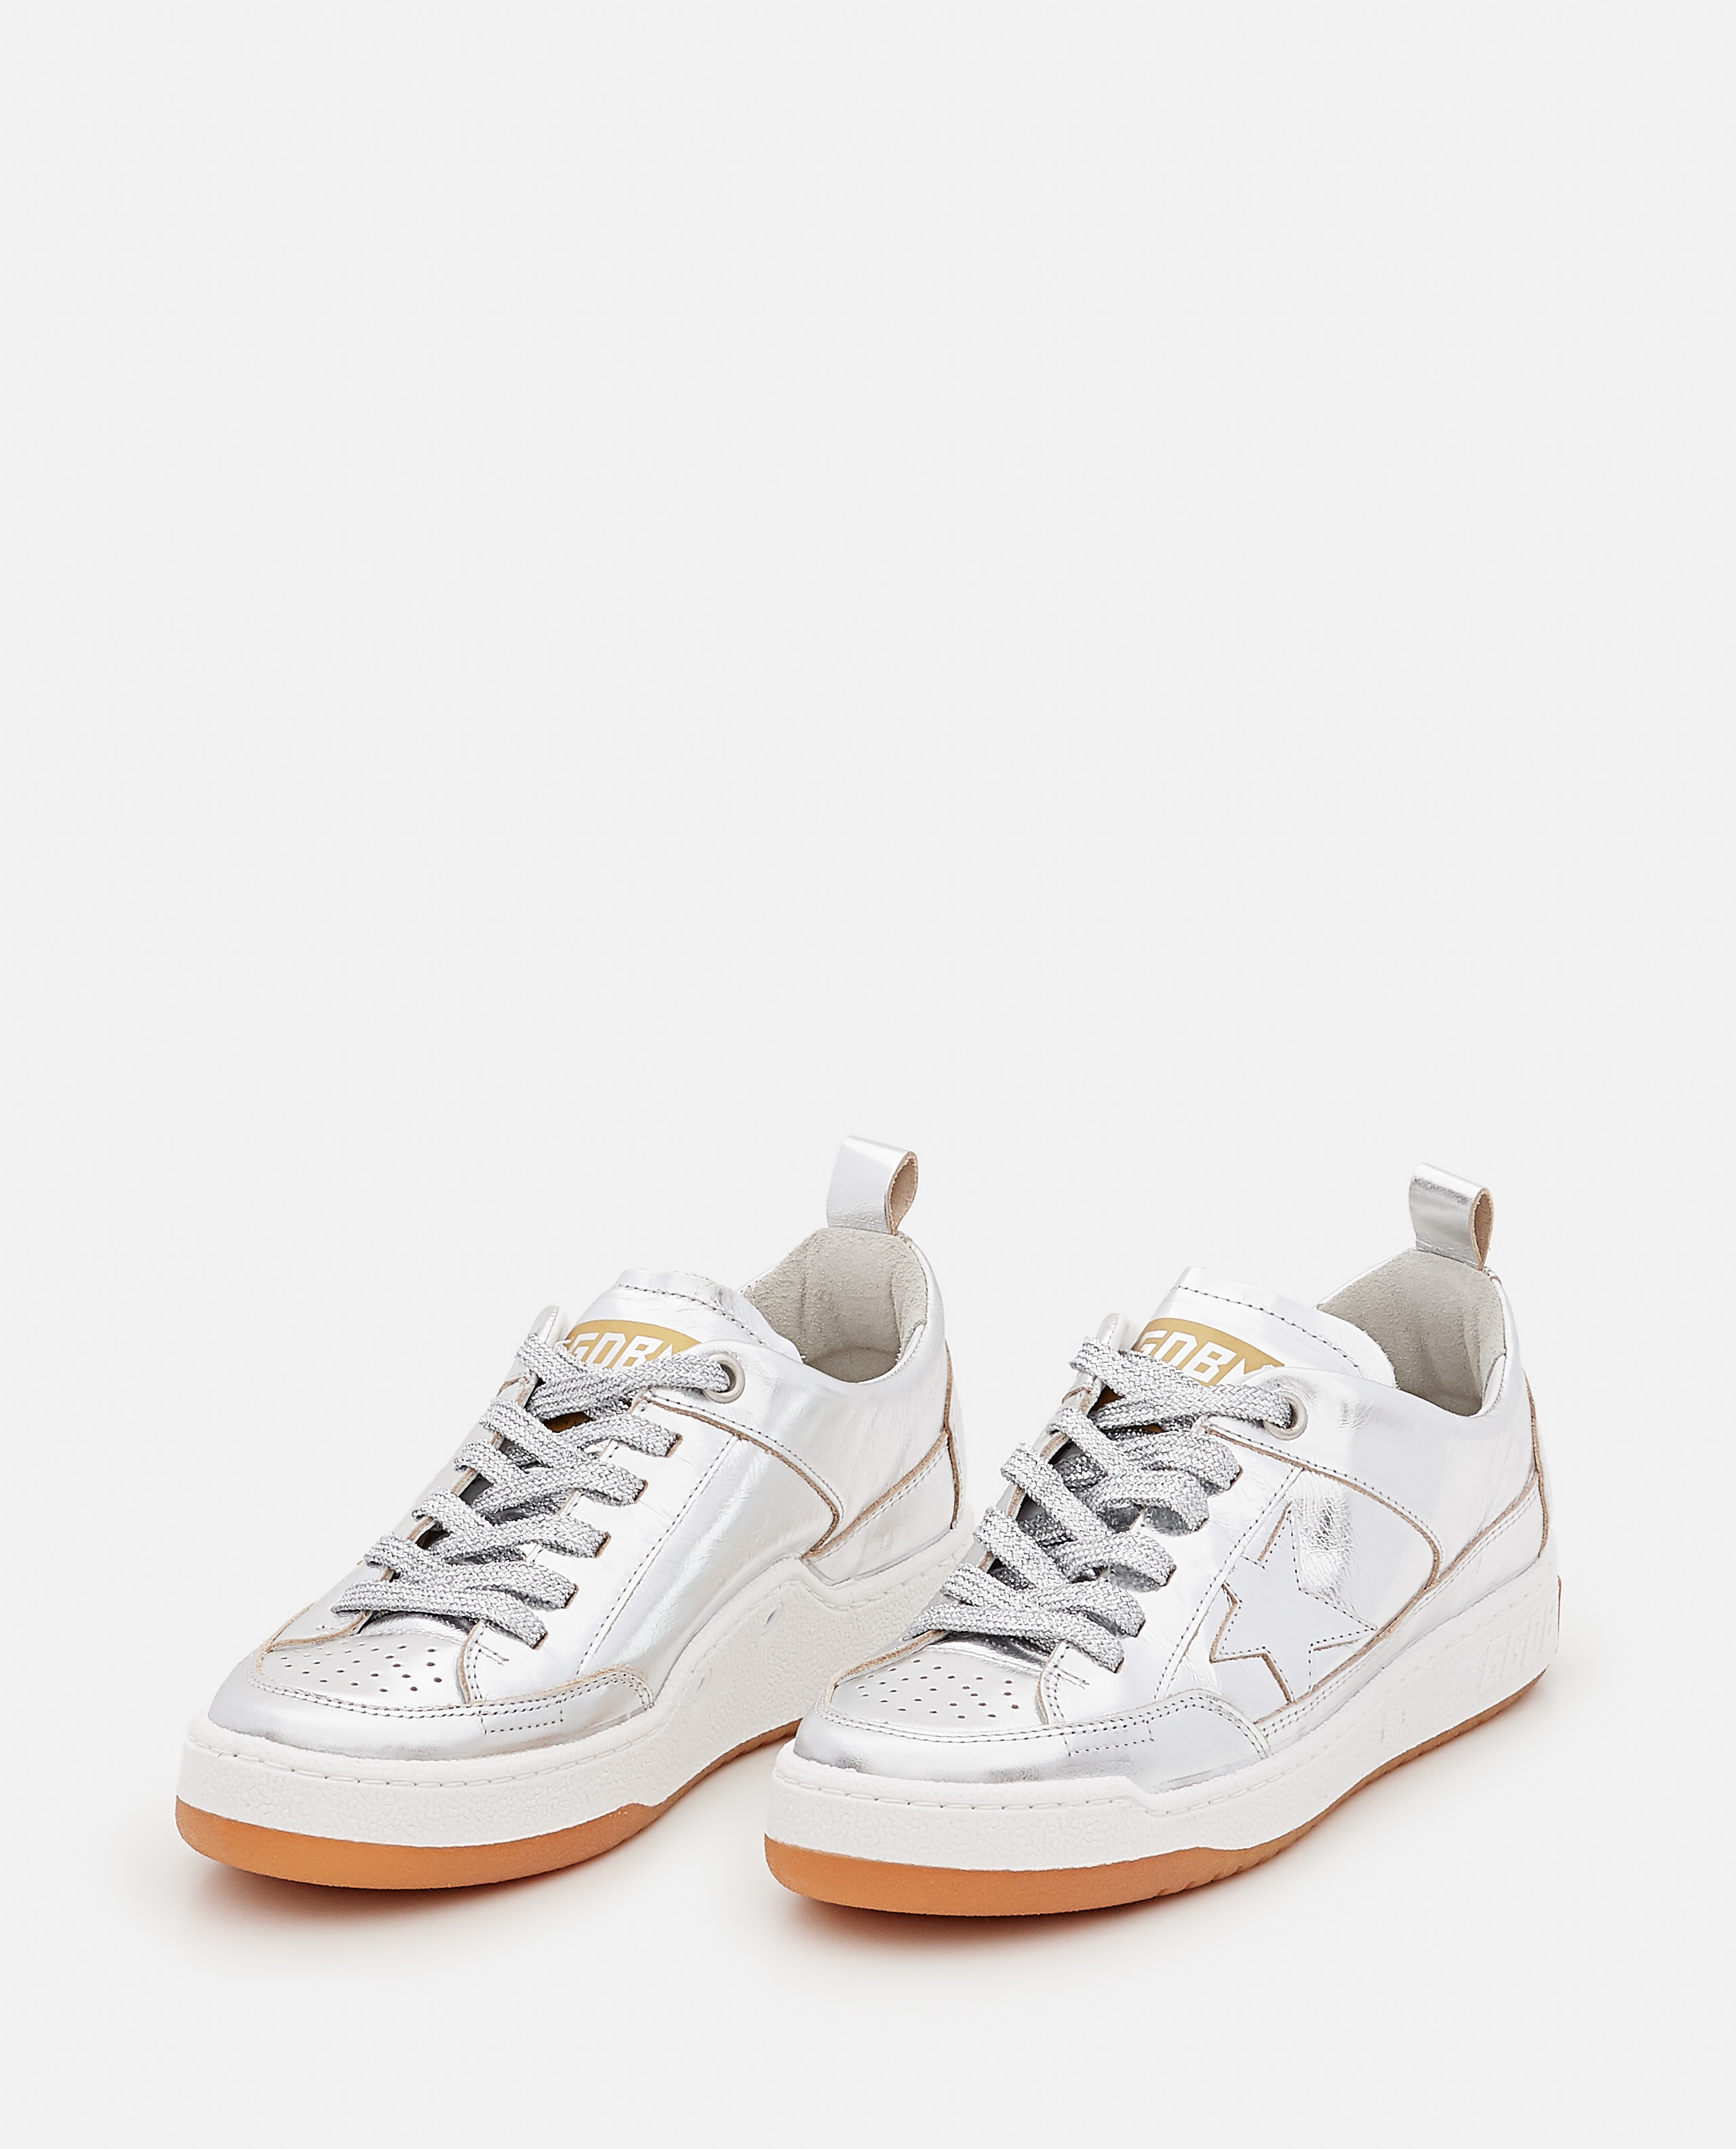 YEAH LAMINATED LEATHER SNEAKERS Women Golden Goose 000322260047121 2